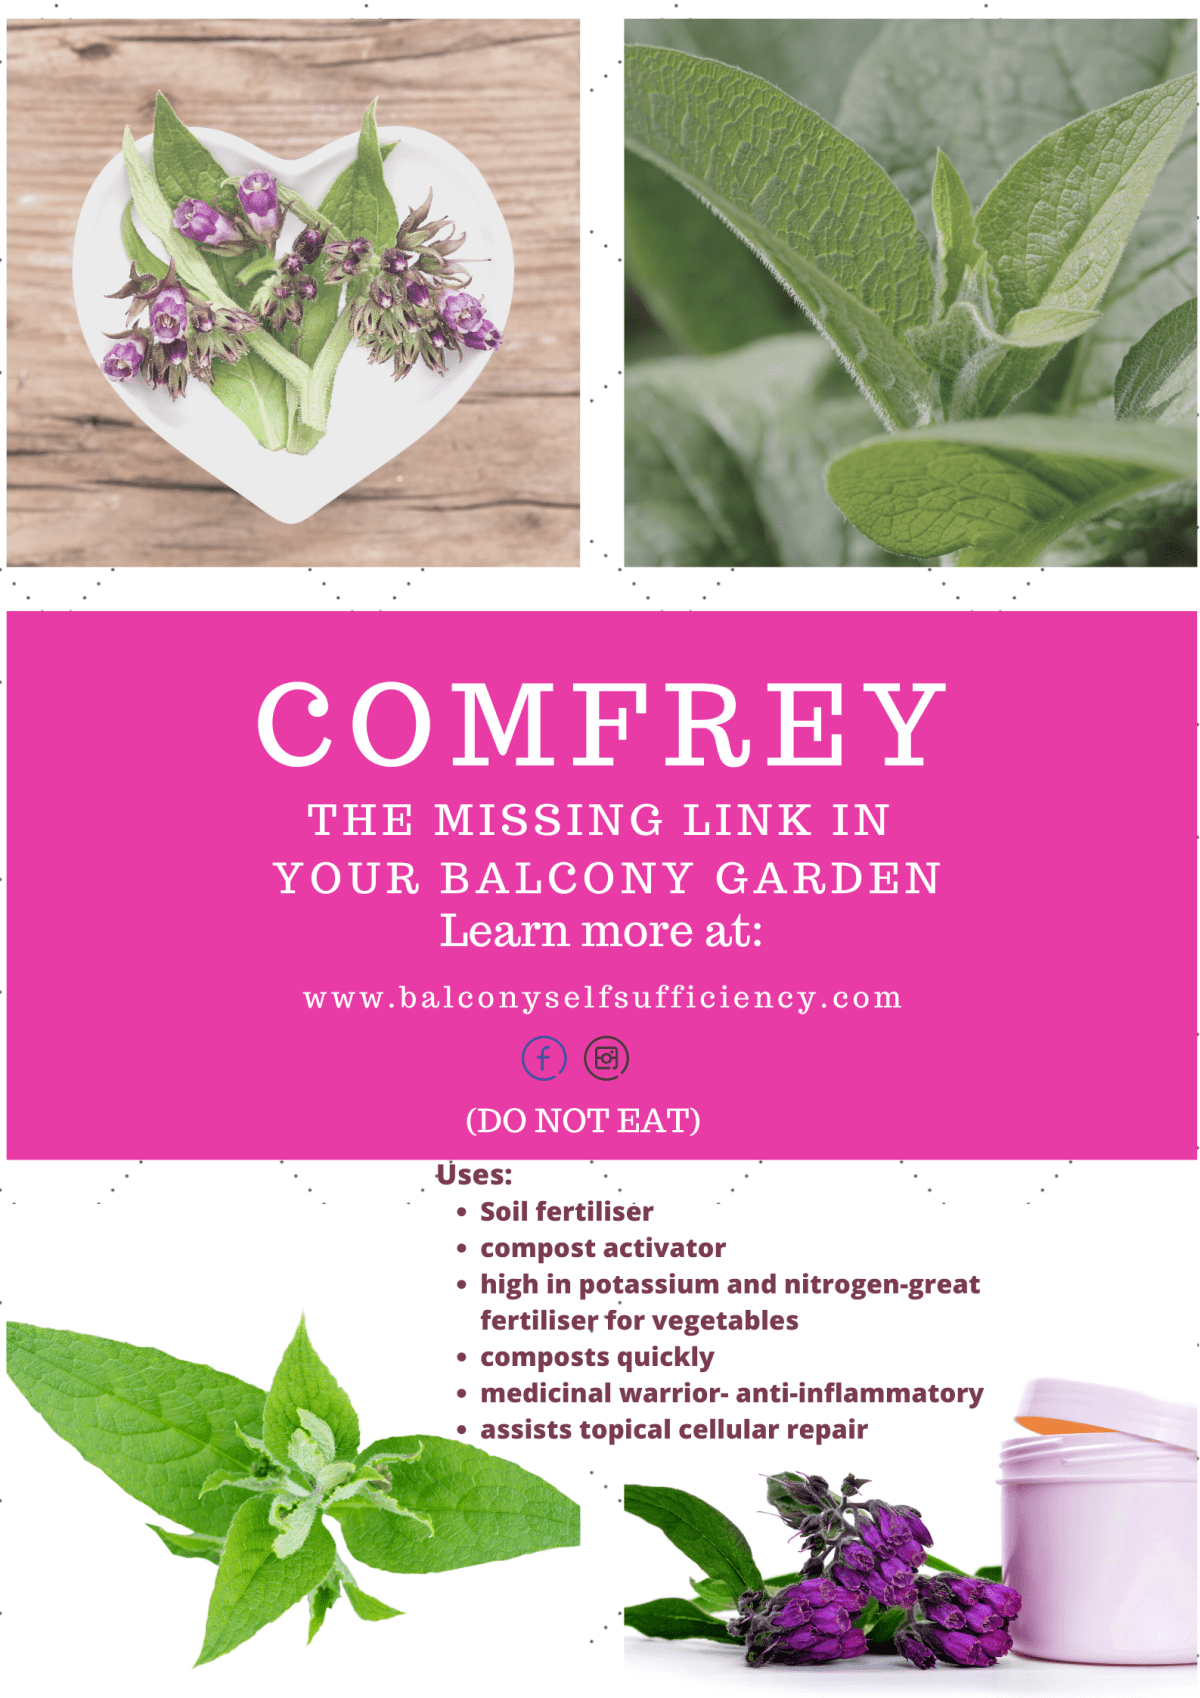 Uses for Comfrey in an organic balcony garden